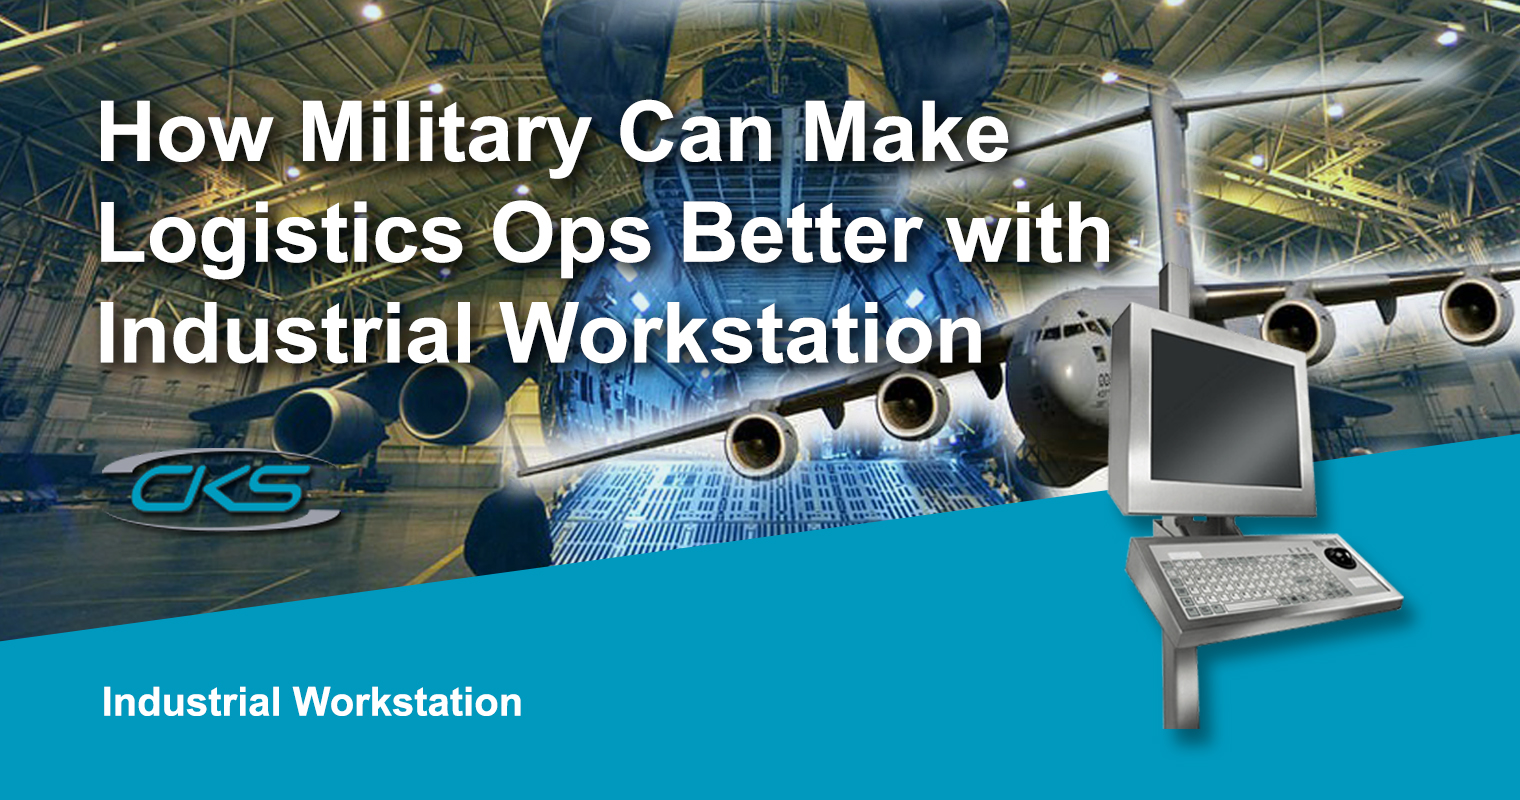 Dynamic Military Operations using Industrial PC Workstation